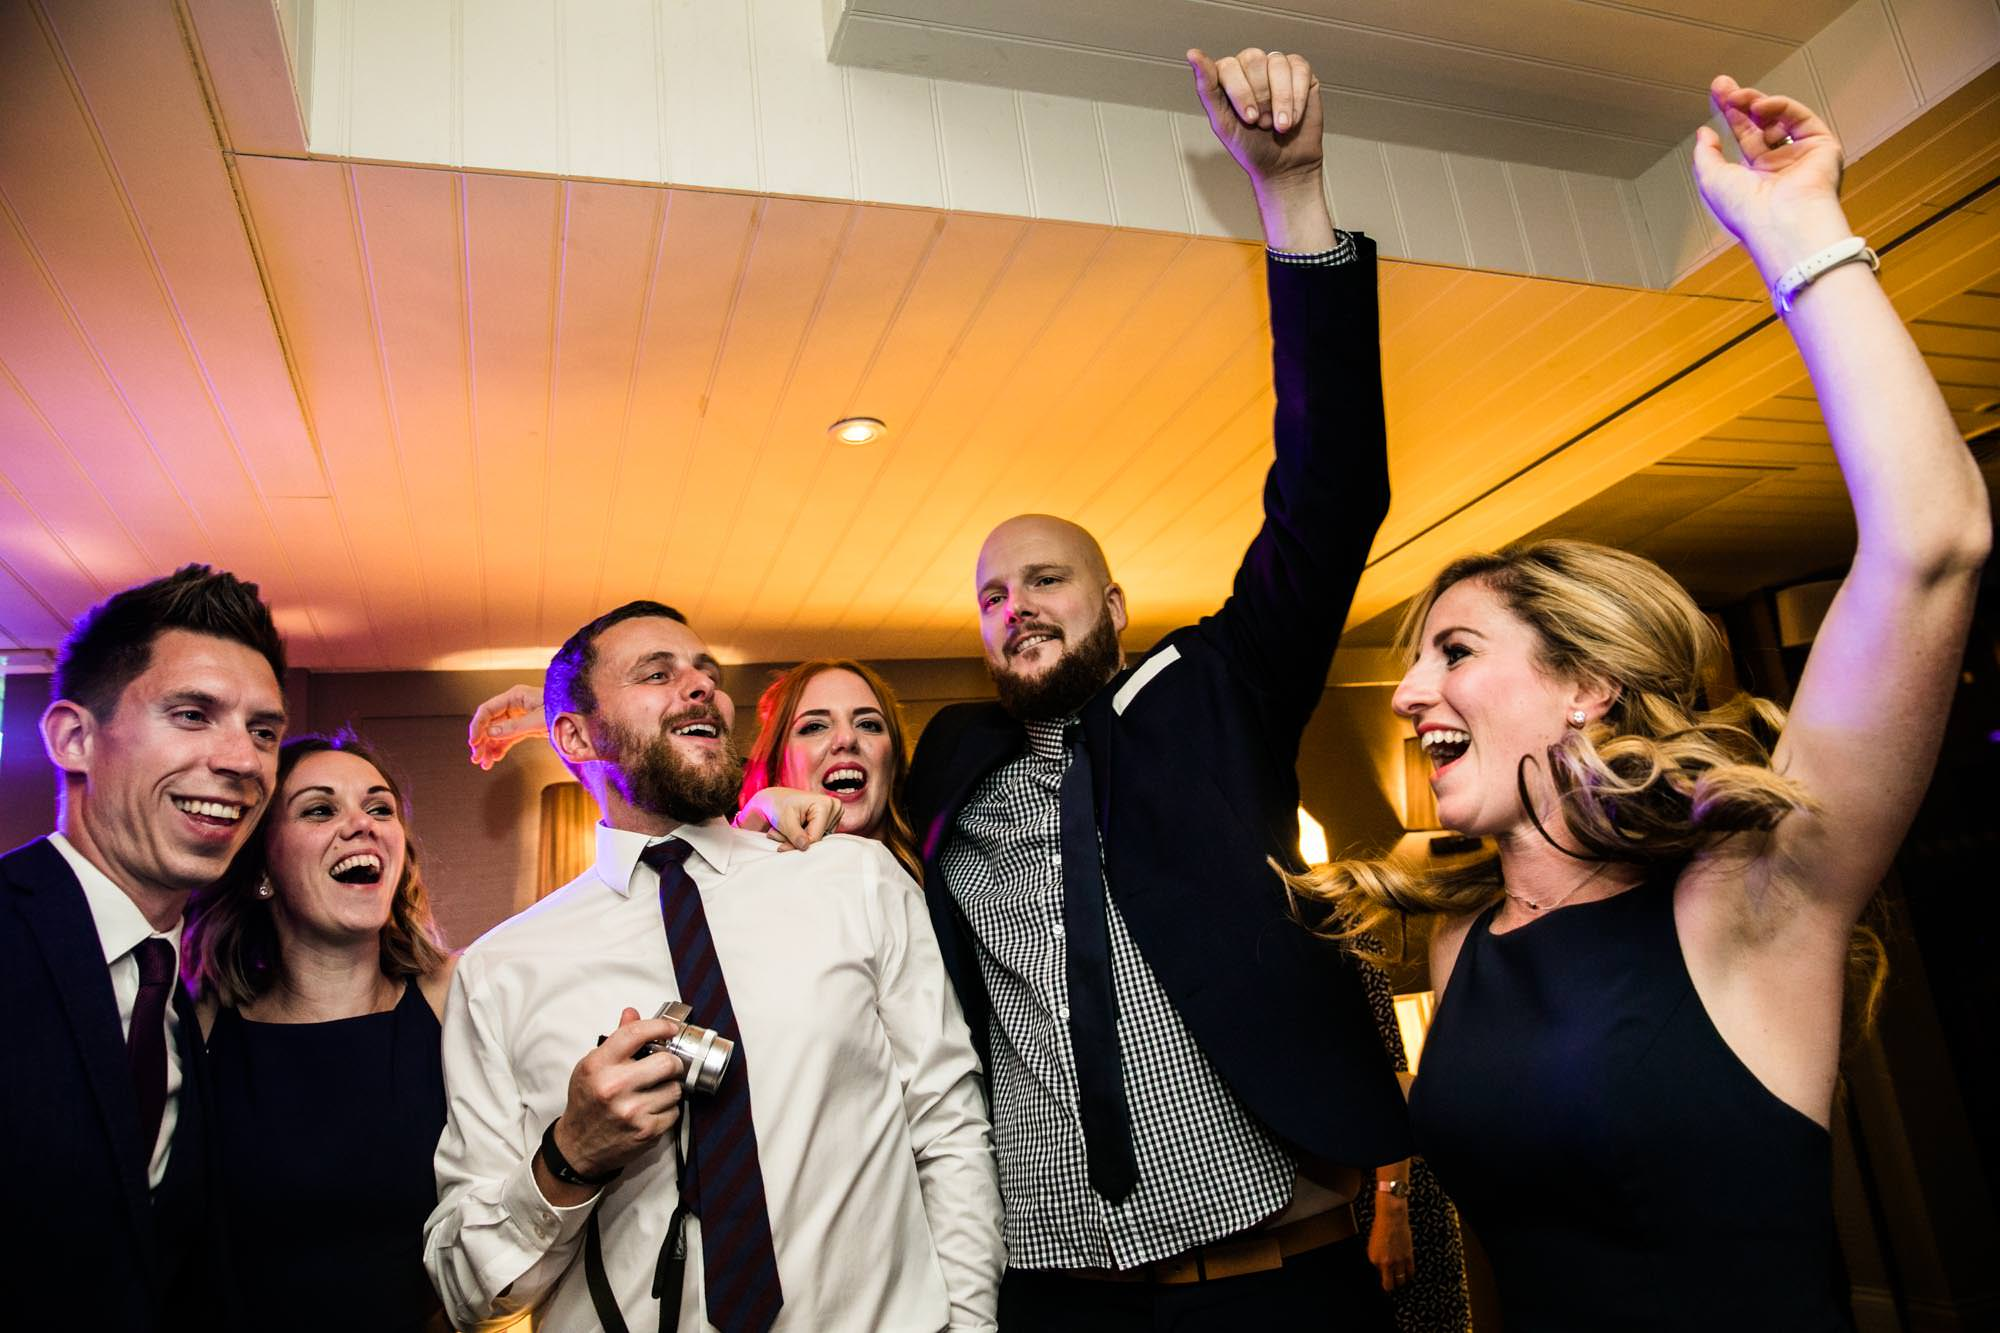 King Street Townhouse Fun Party Wedding Photos